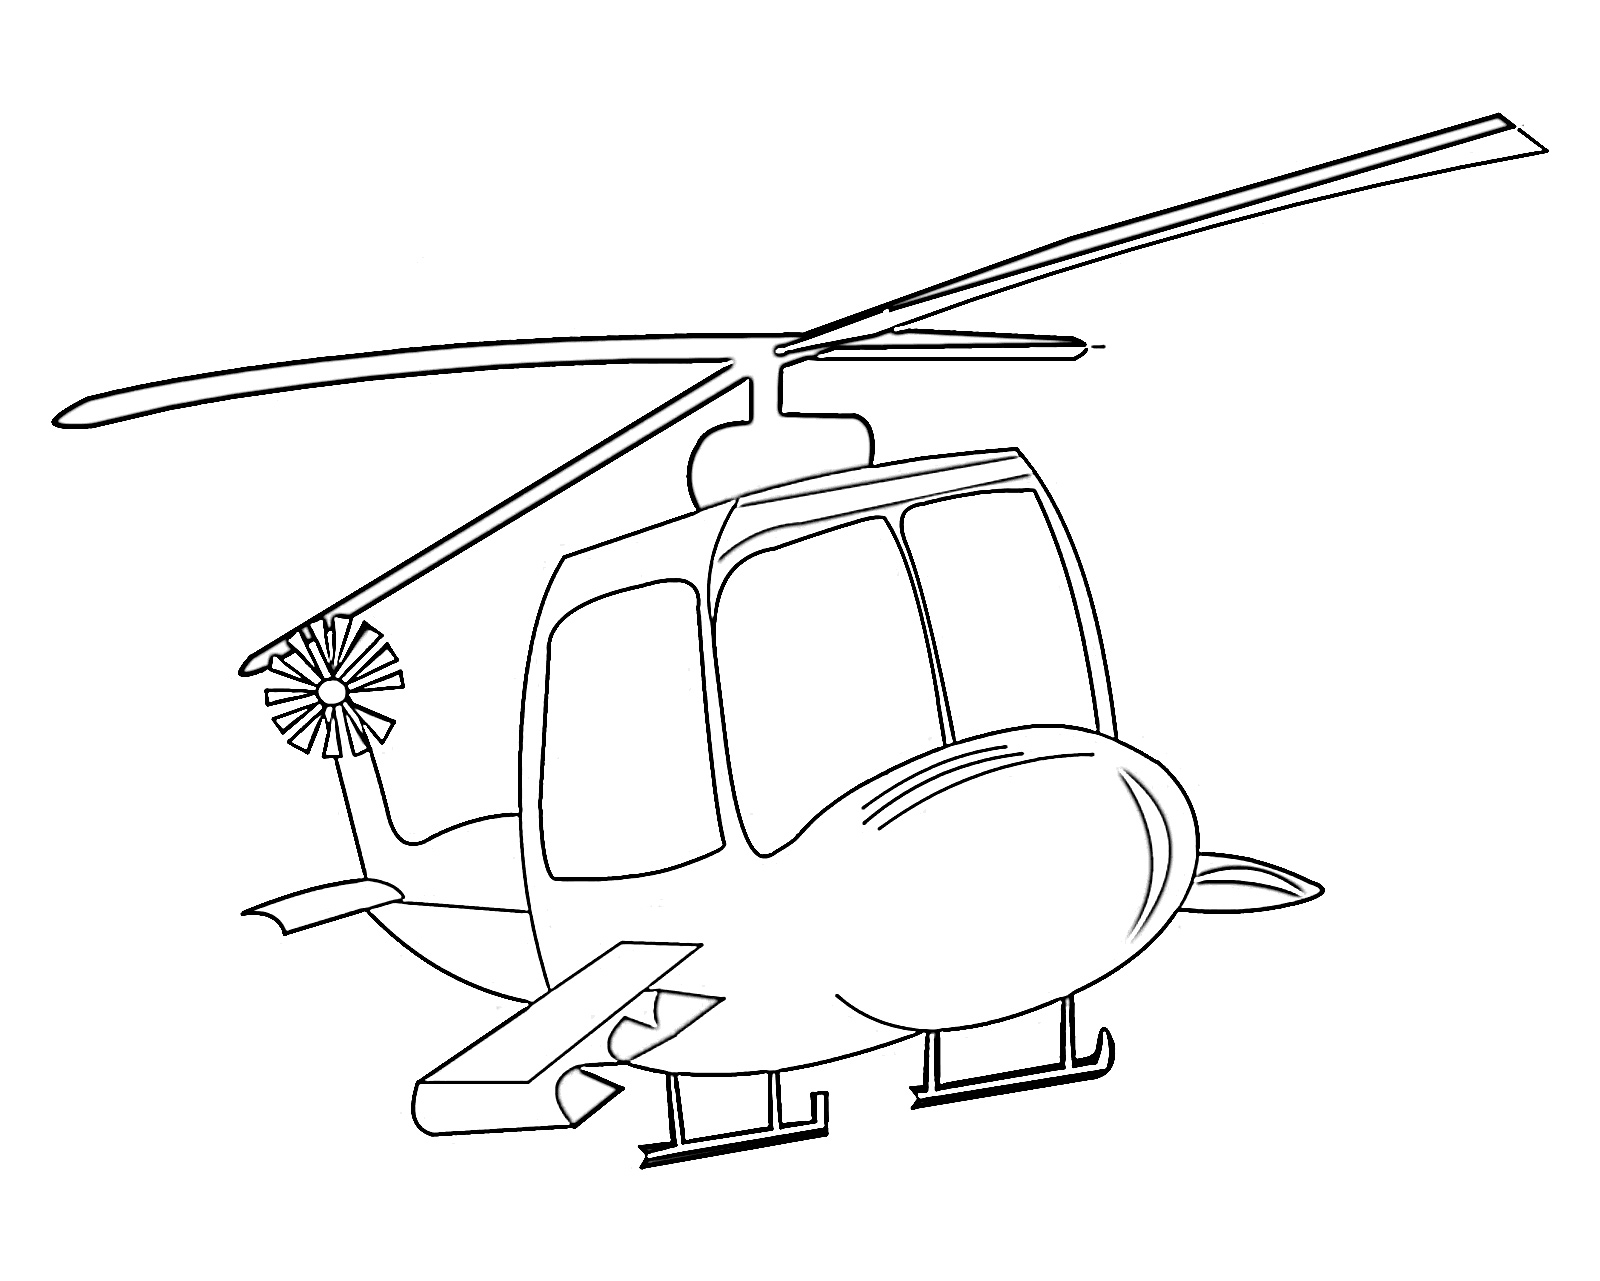 Helicopter cartoon coloring page